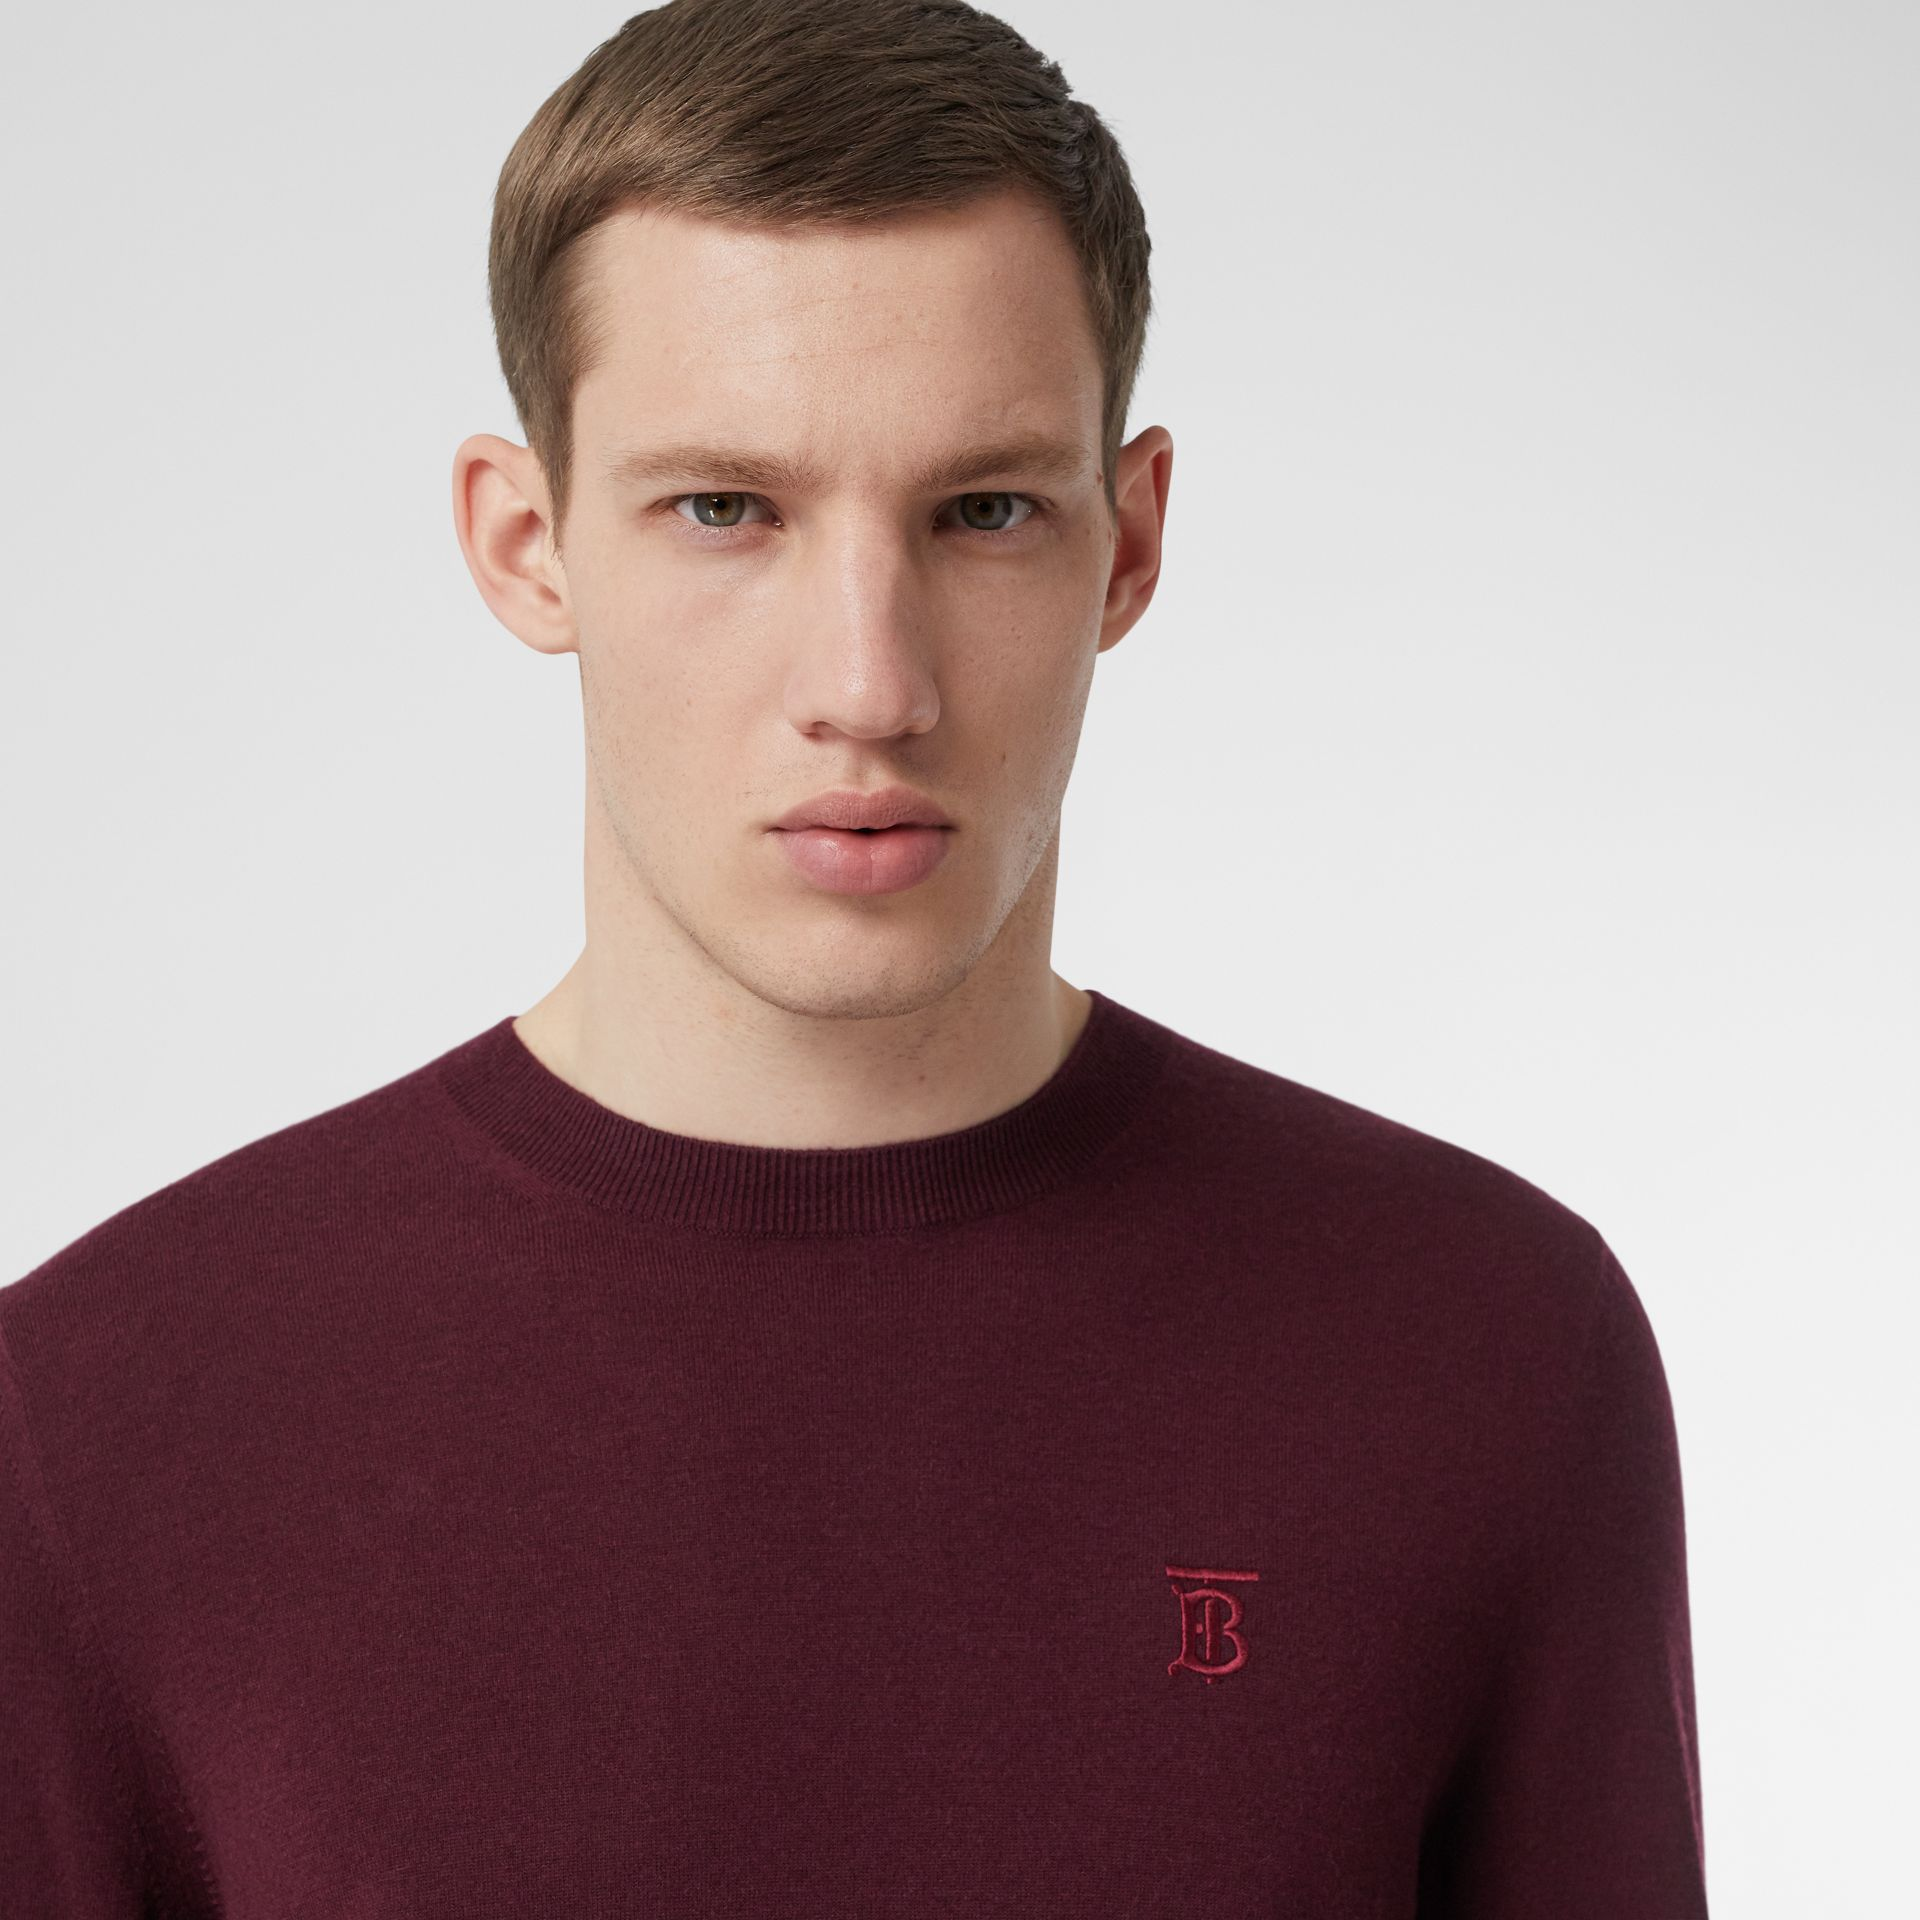 Monogram Motif Cashmere Sweater in Burgundy - Men | Burberry - gallery image 1